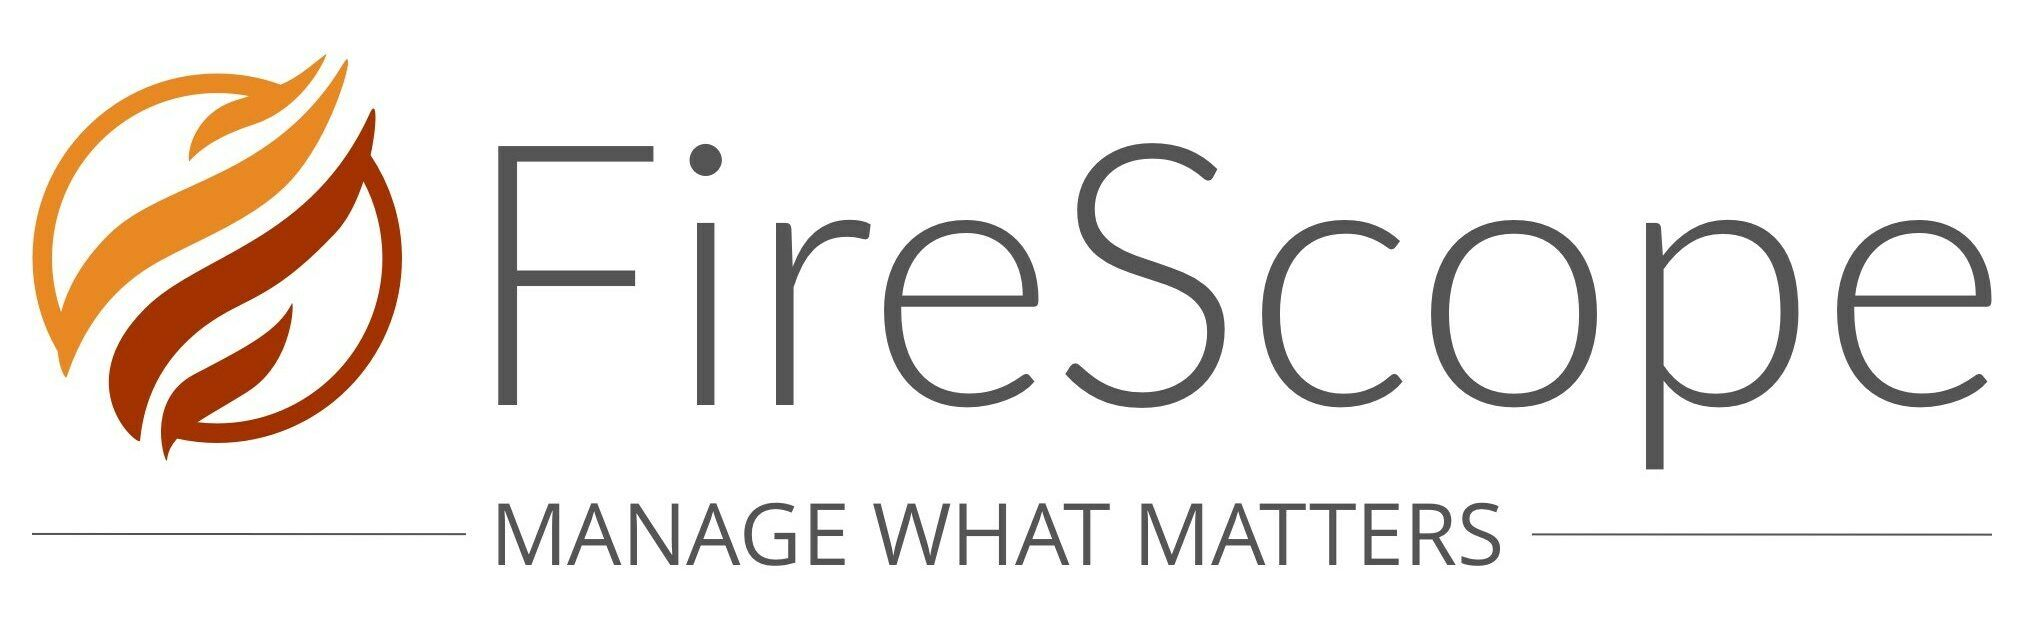 Firescope Partner